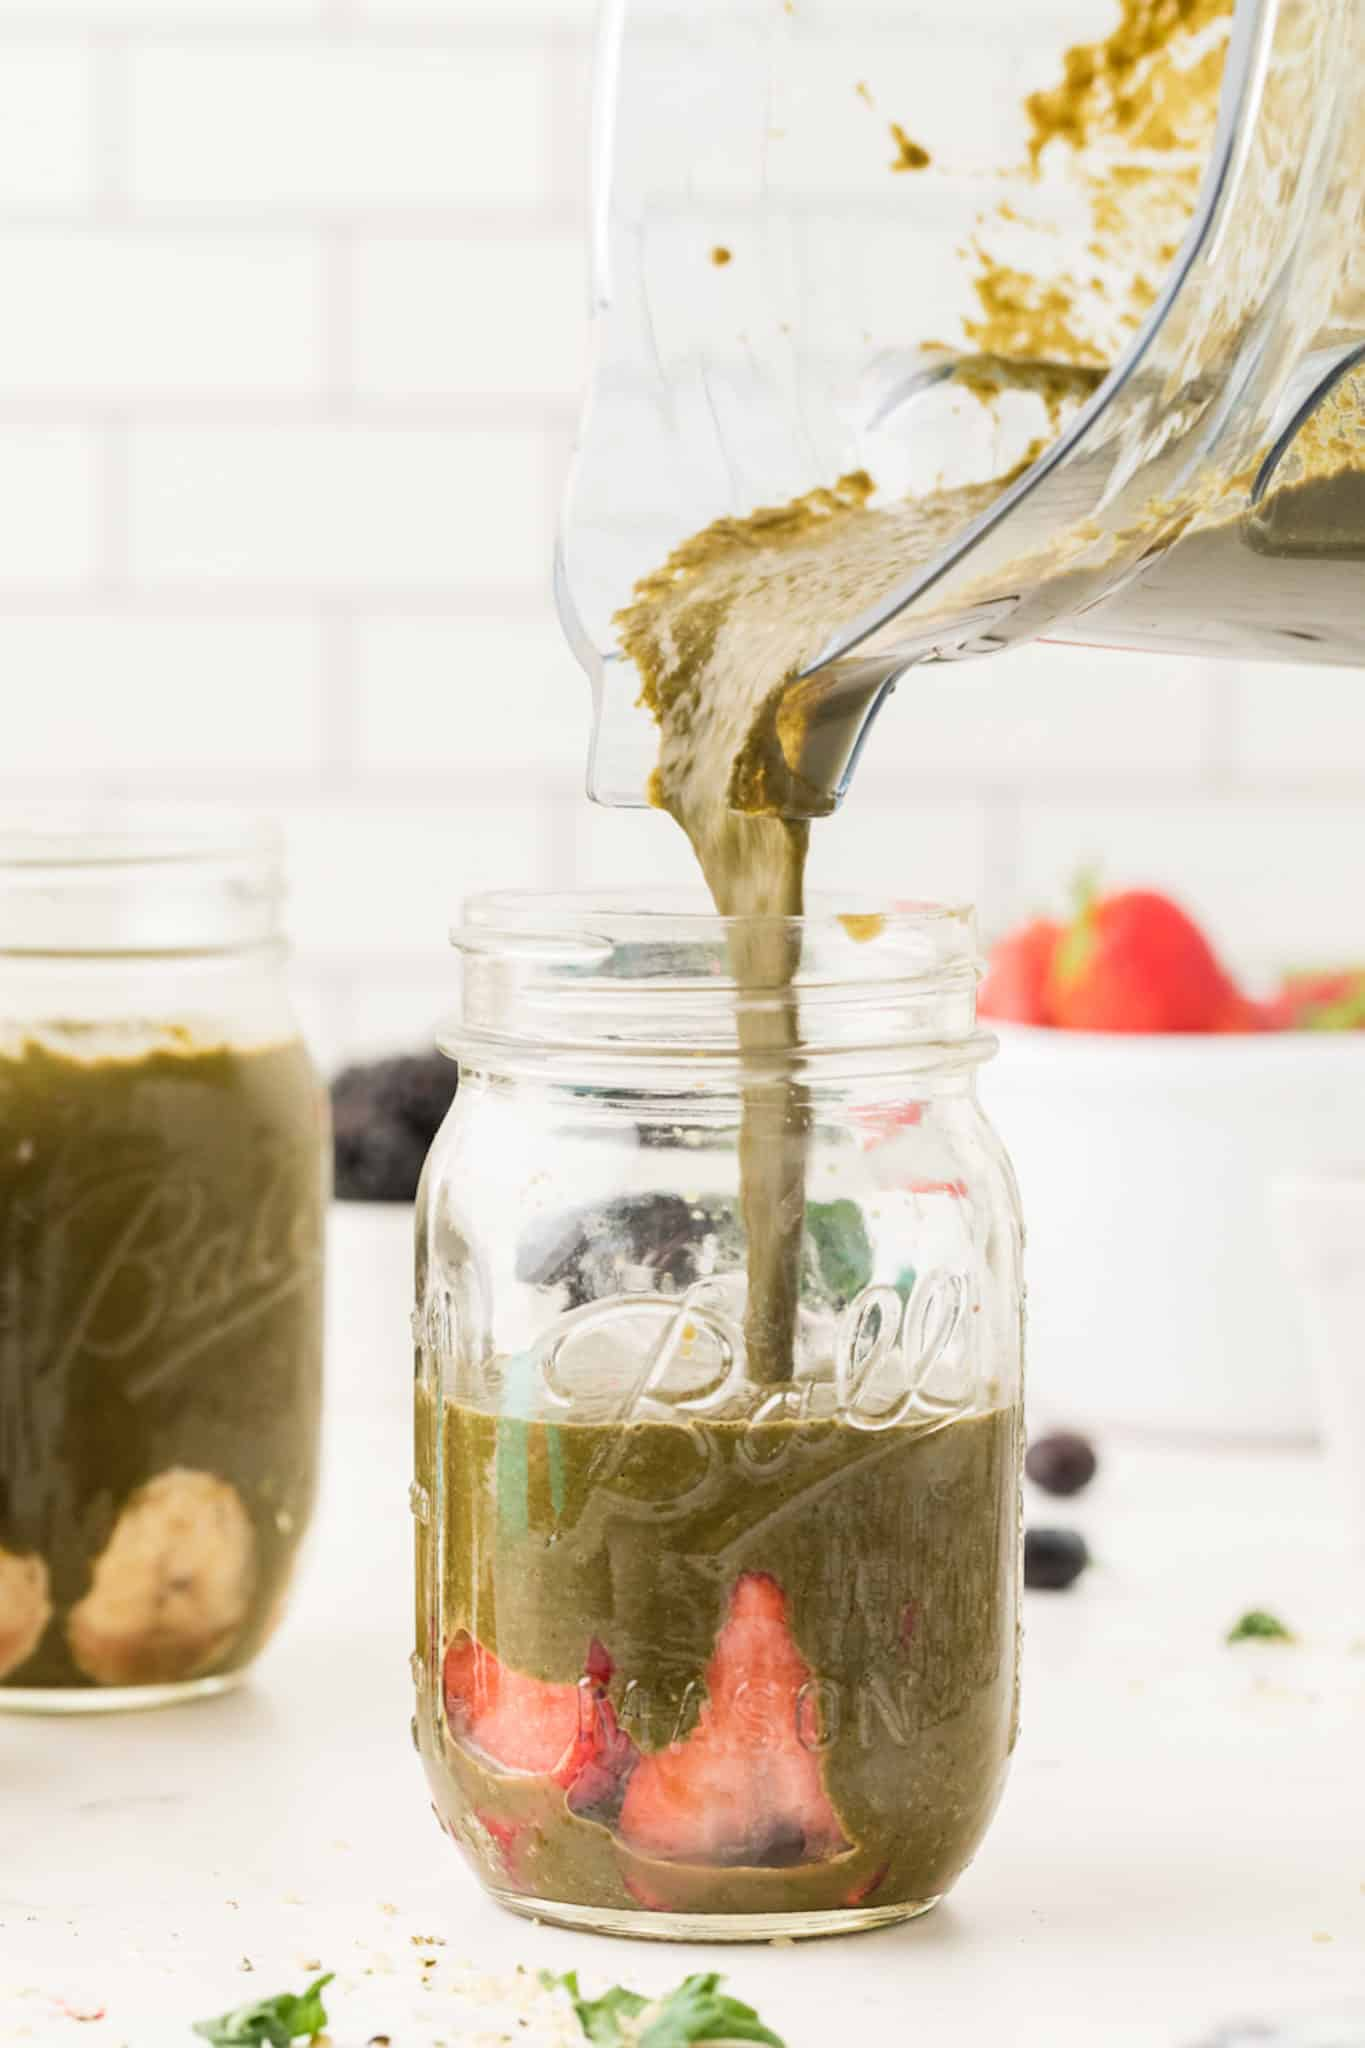 photo showing pouring a green smoothie into a jar